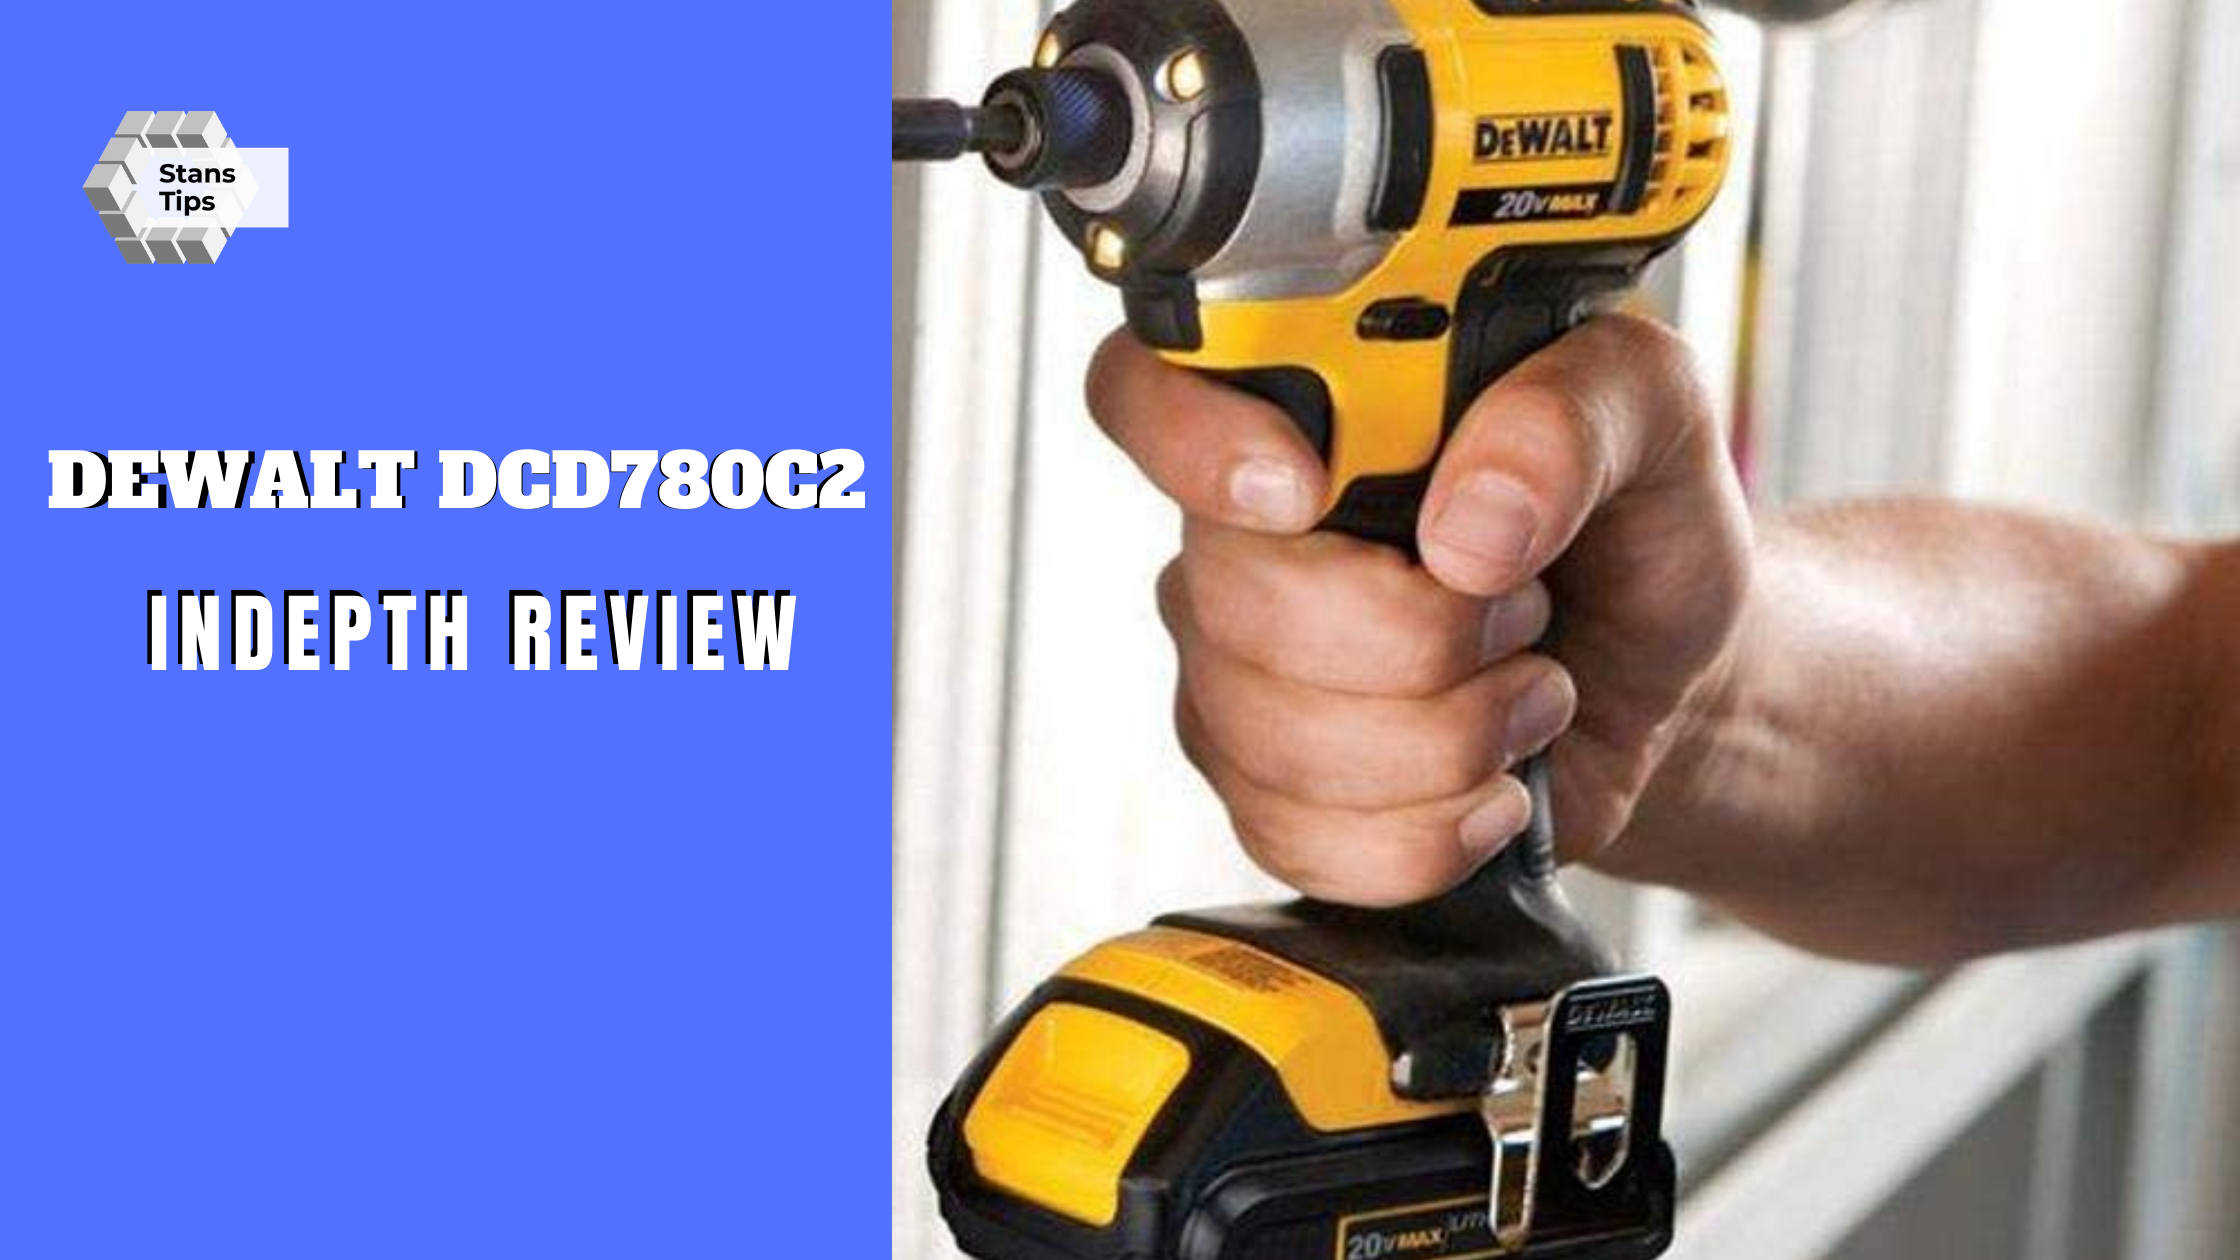 Dewalt dcd780c2 review